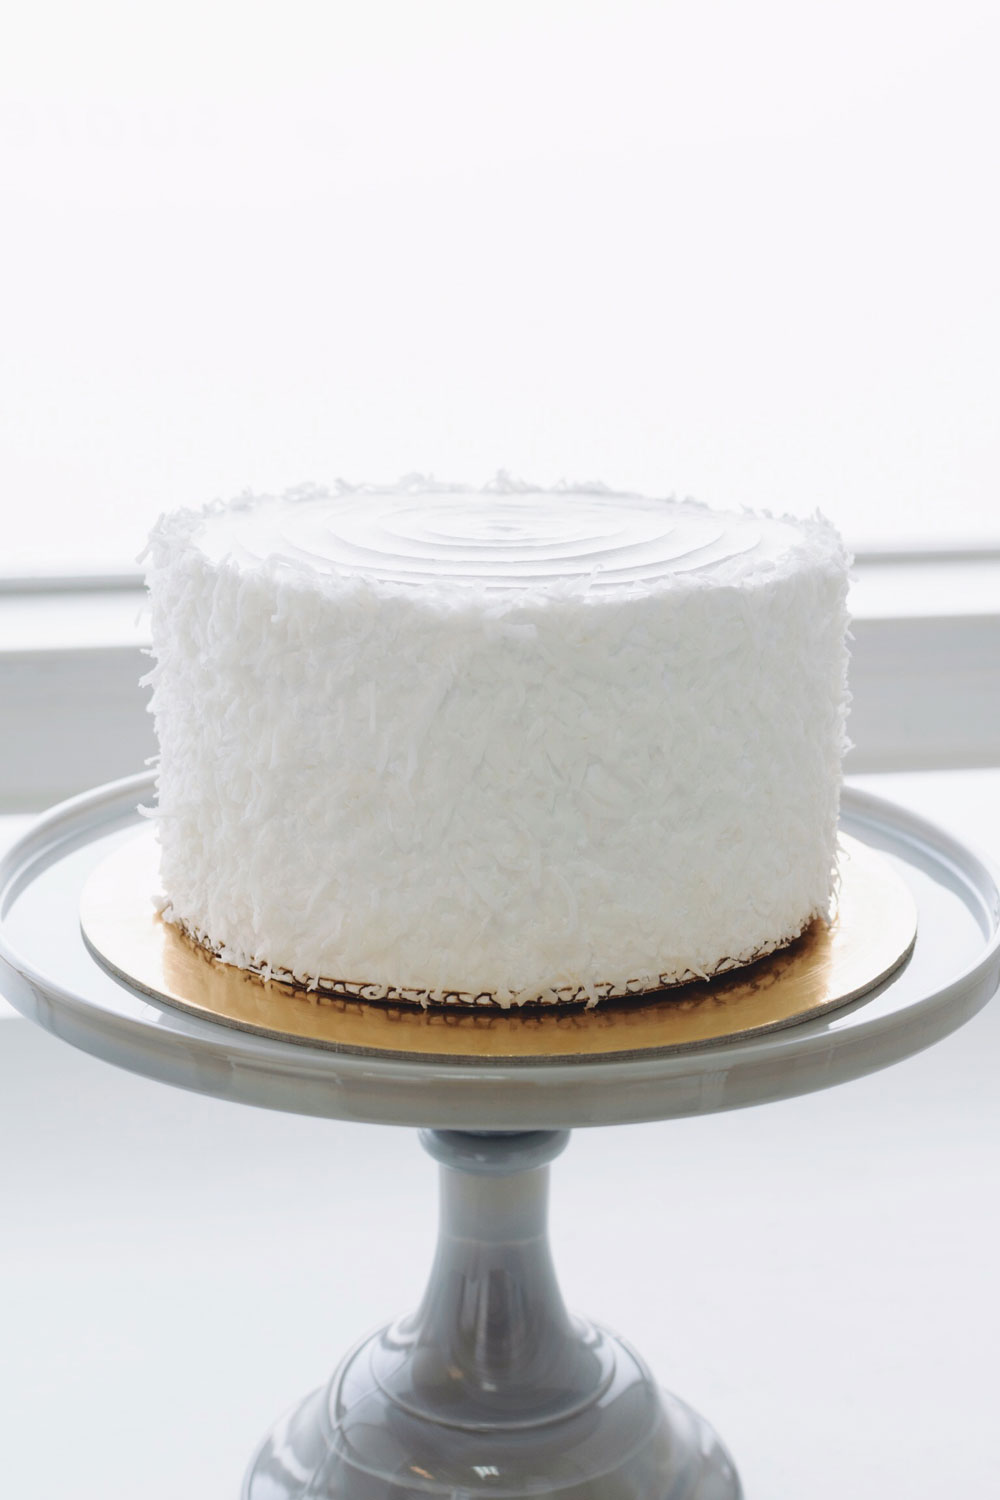 Coconut Cream - vanilla cake | coconut cream filling | whipped cream icing, shredded coconut